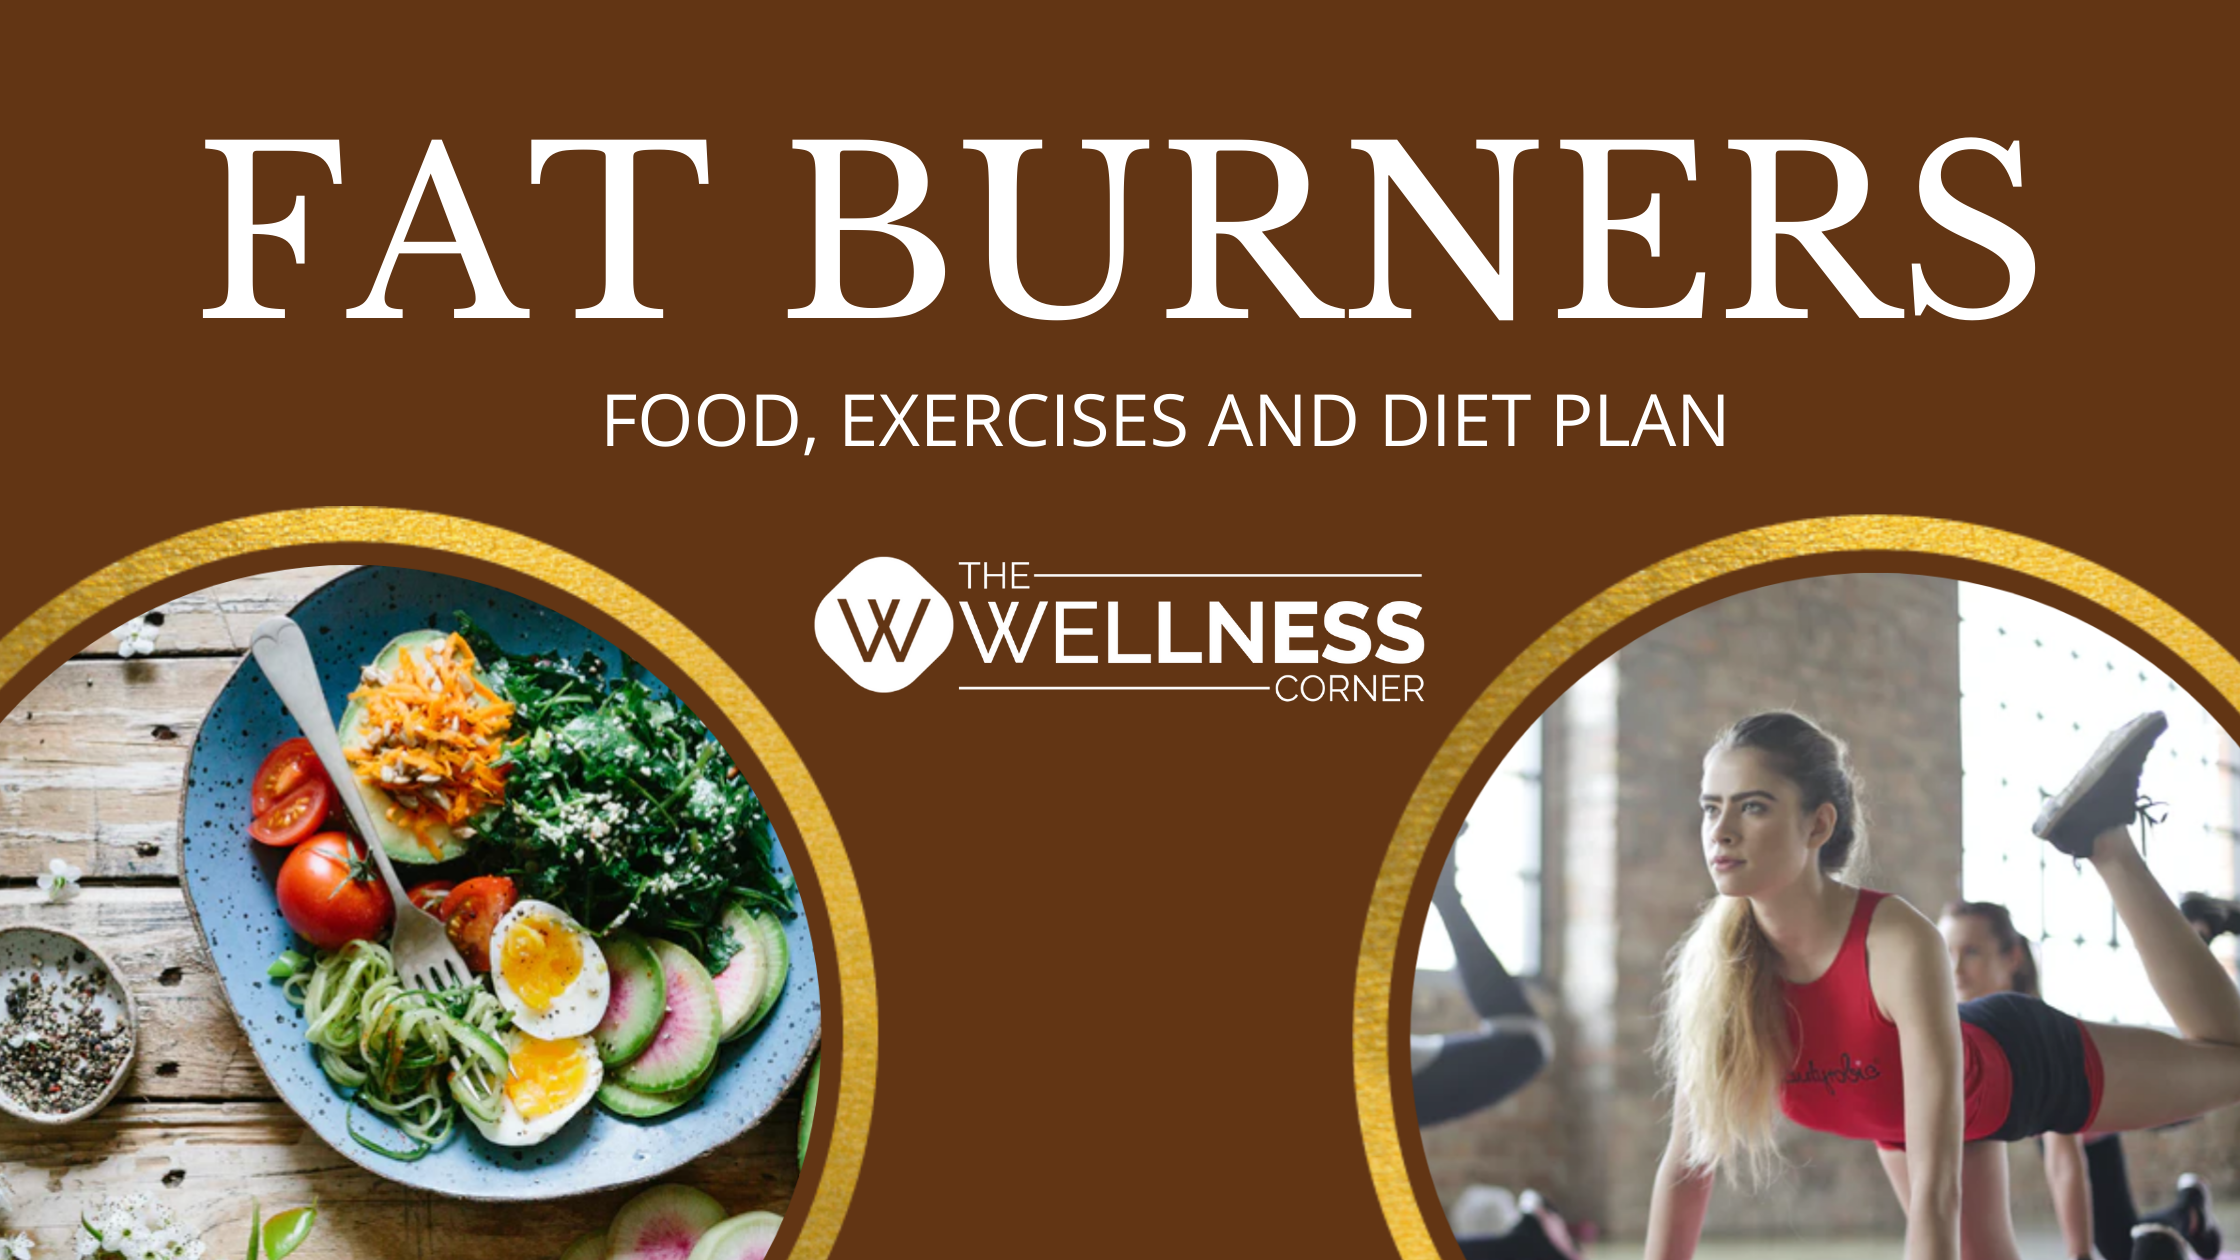 Fat Burners: Food, Exercises and Diet Plan